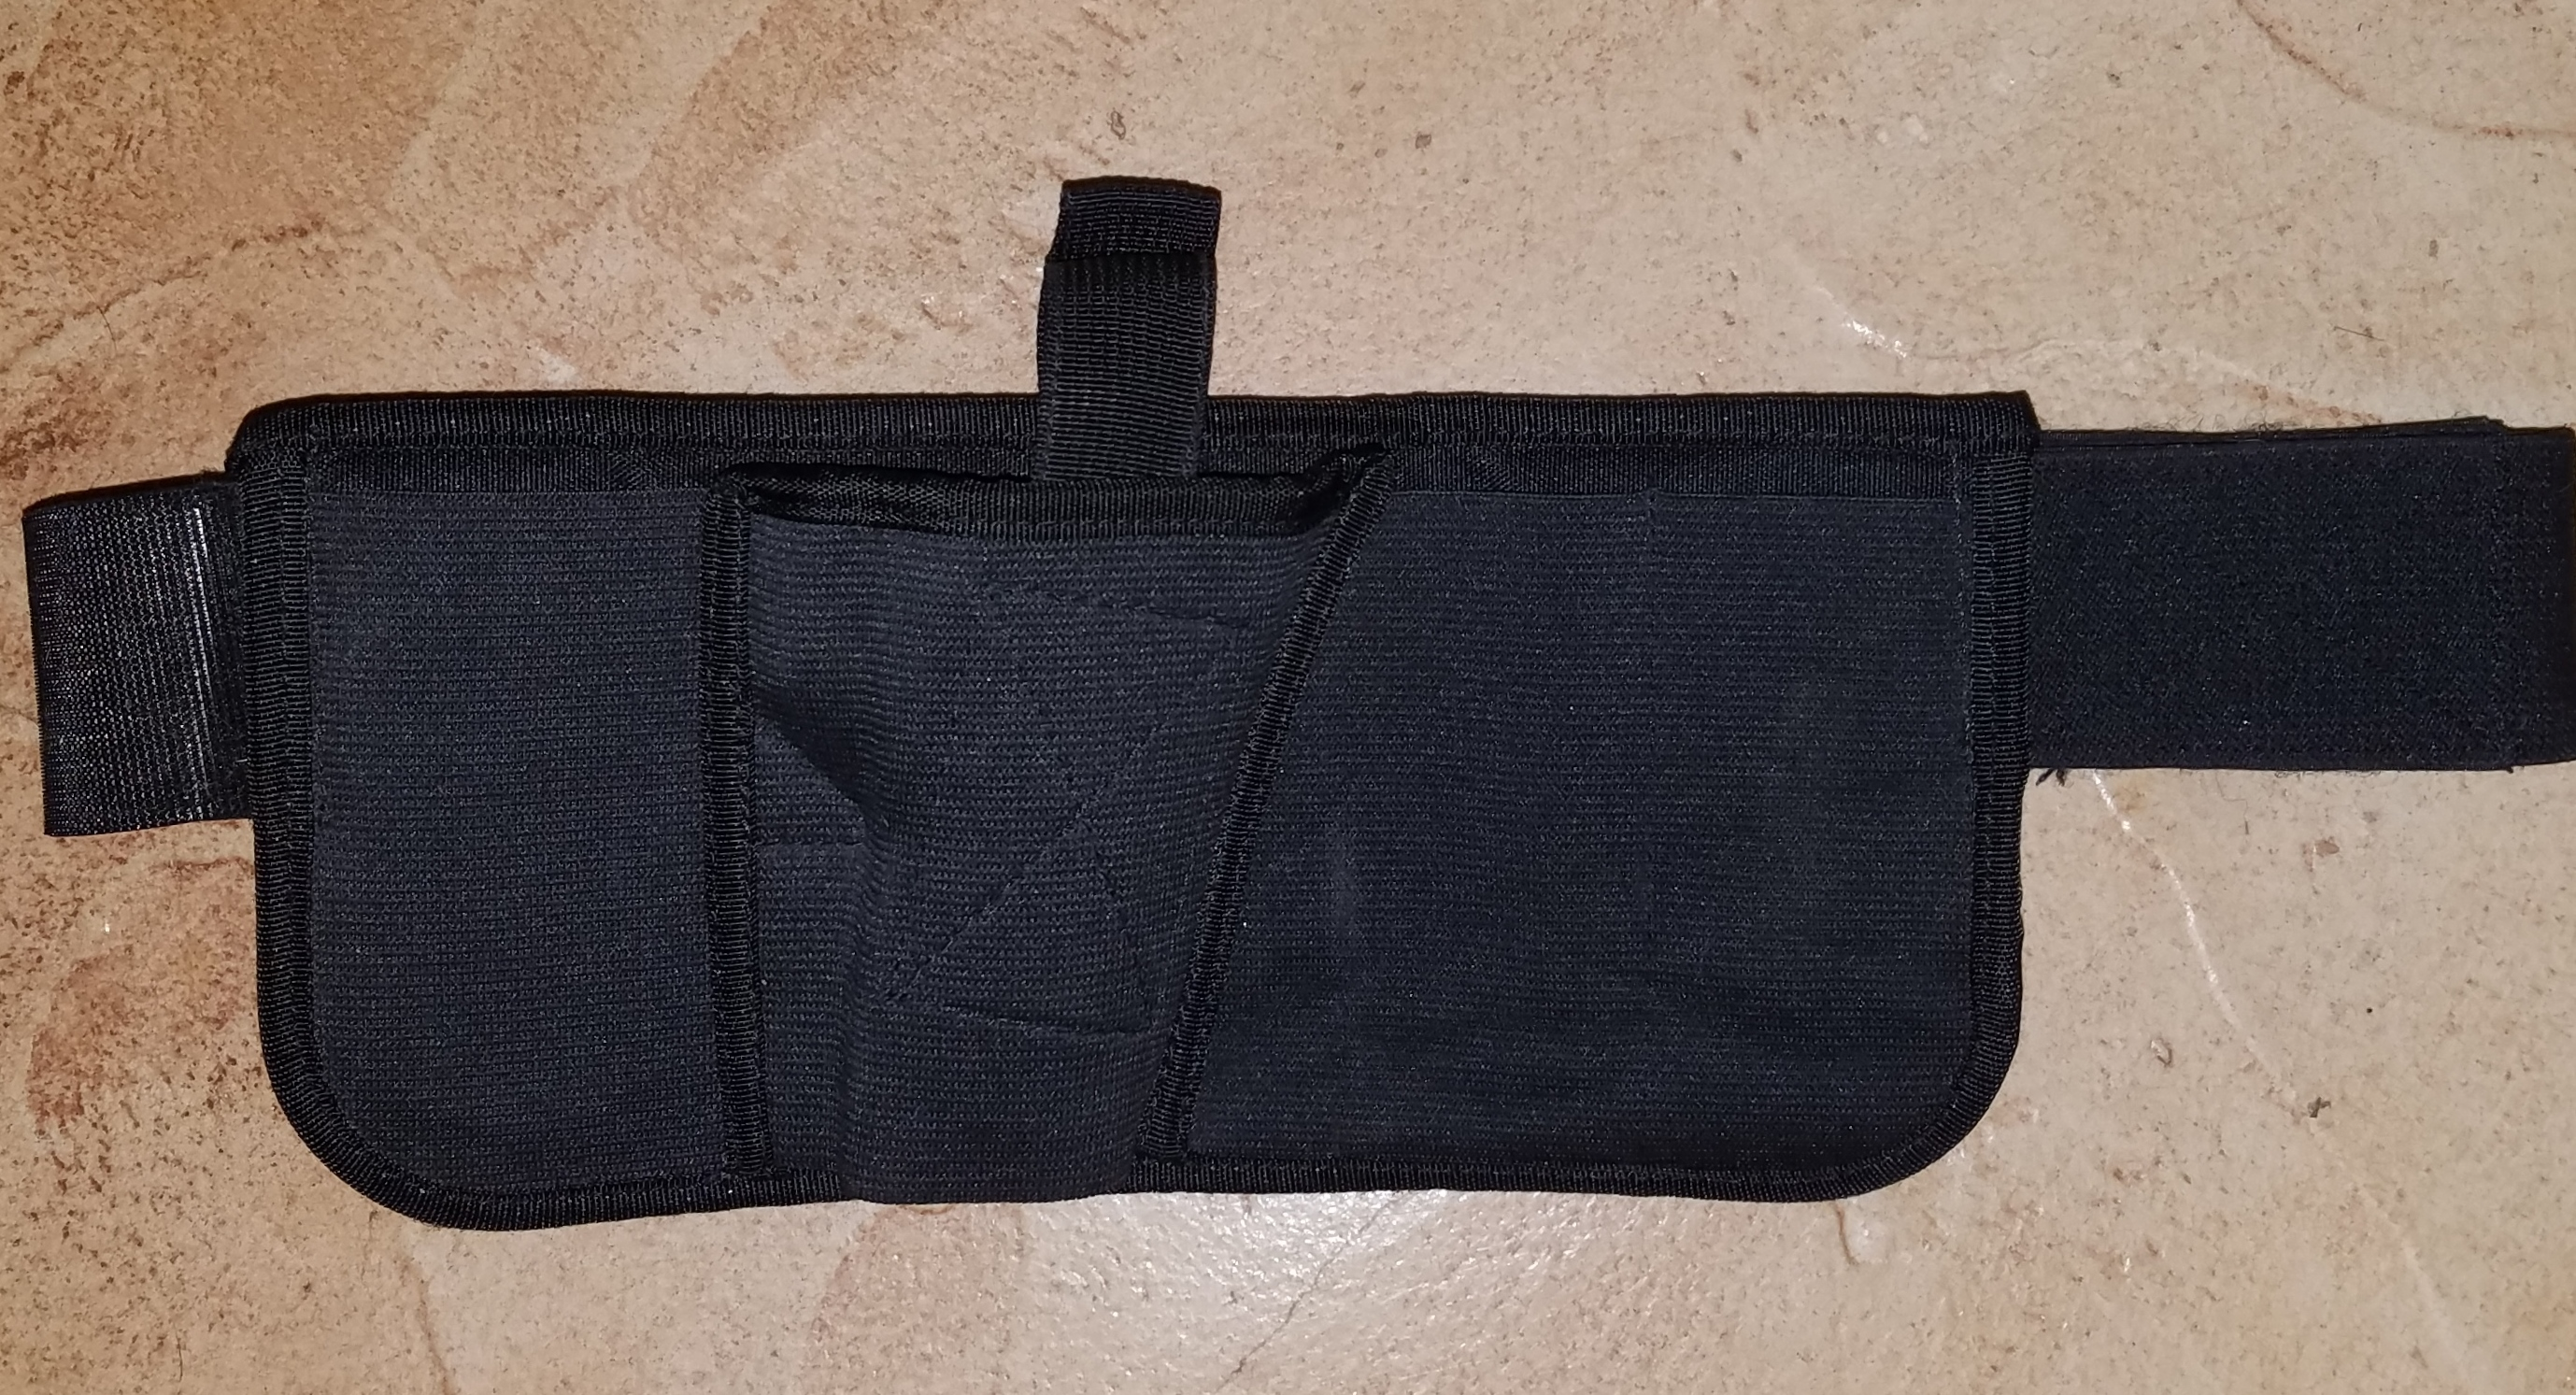 Brave Response Holster Review – Spotter Up